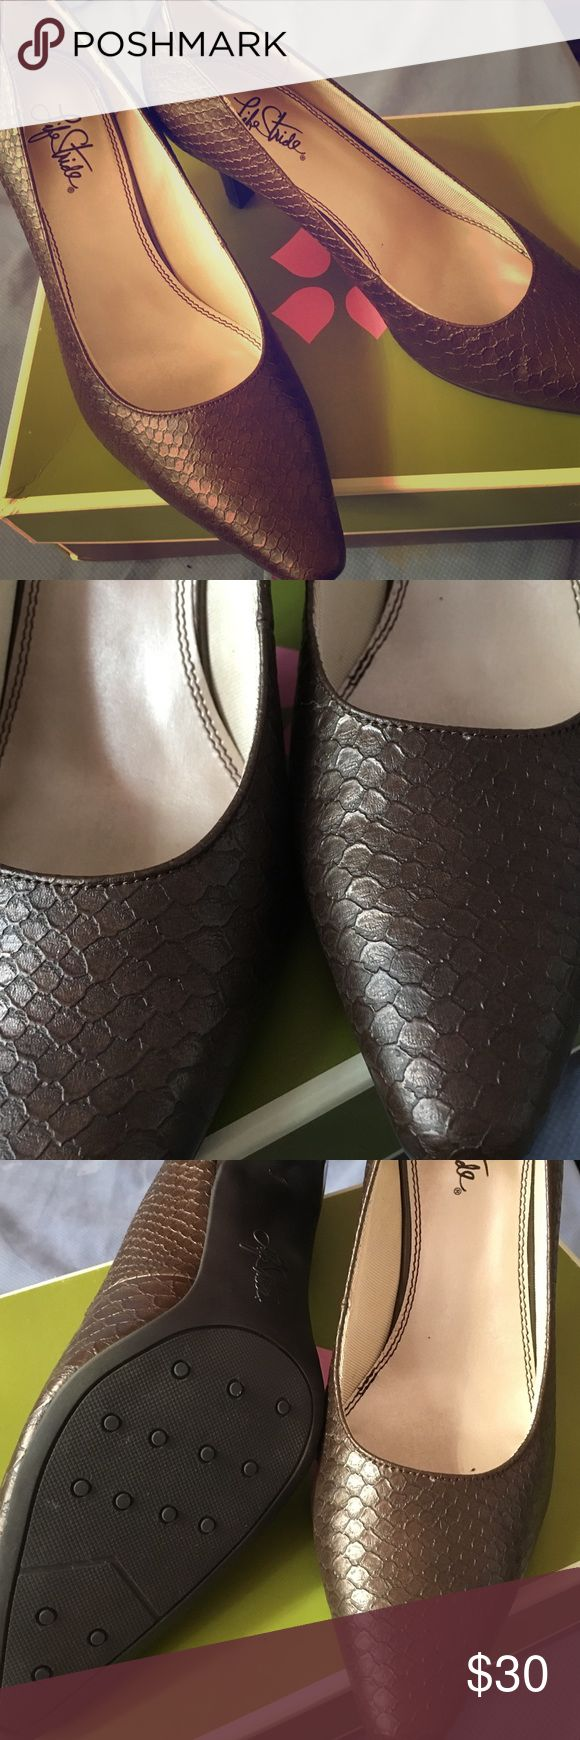 Brown two toned heels Brown two toned heels for sale. Never worn. Size 9 Life Stride Shoes Heels